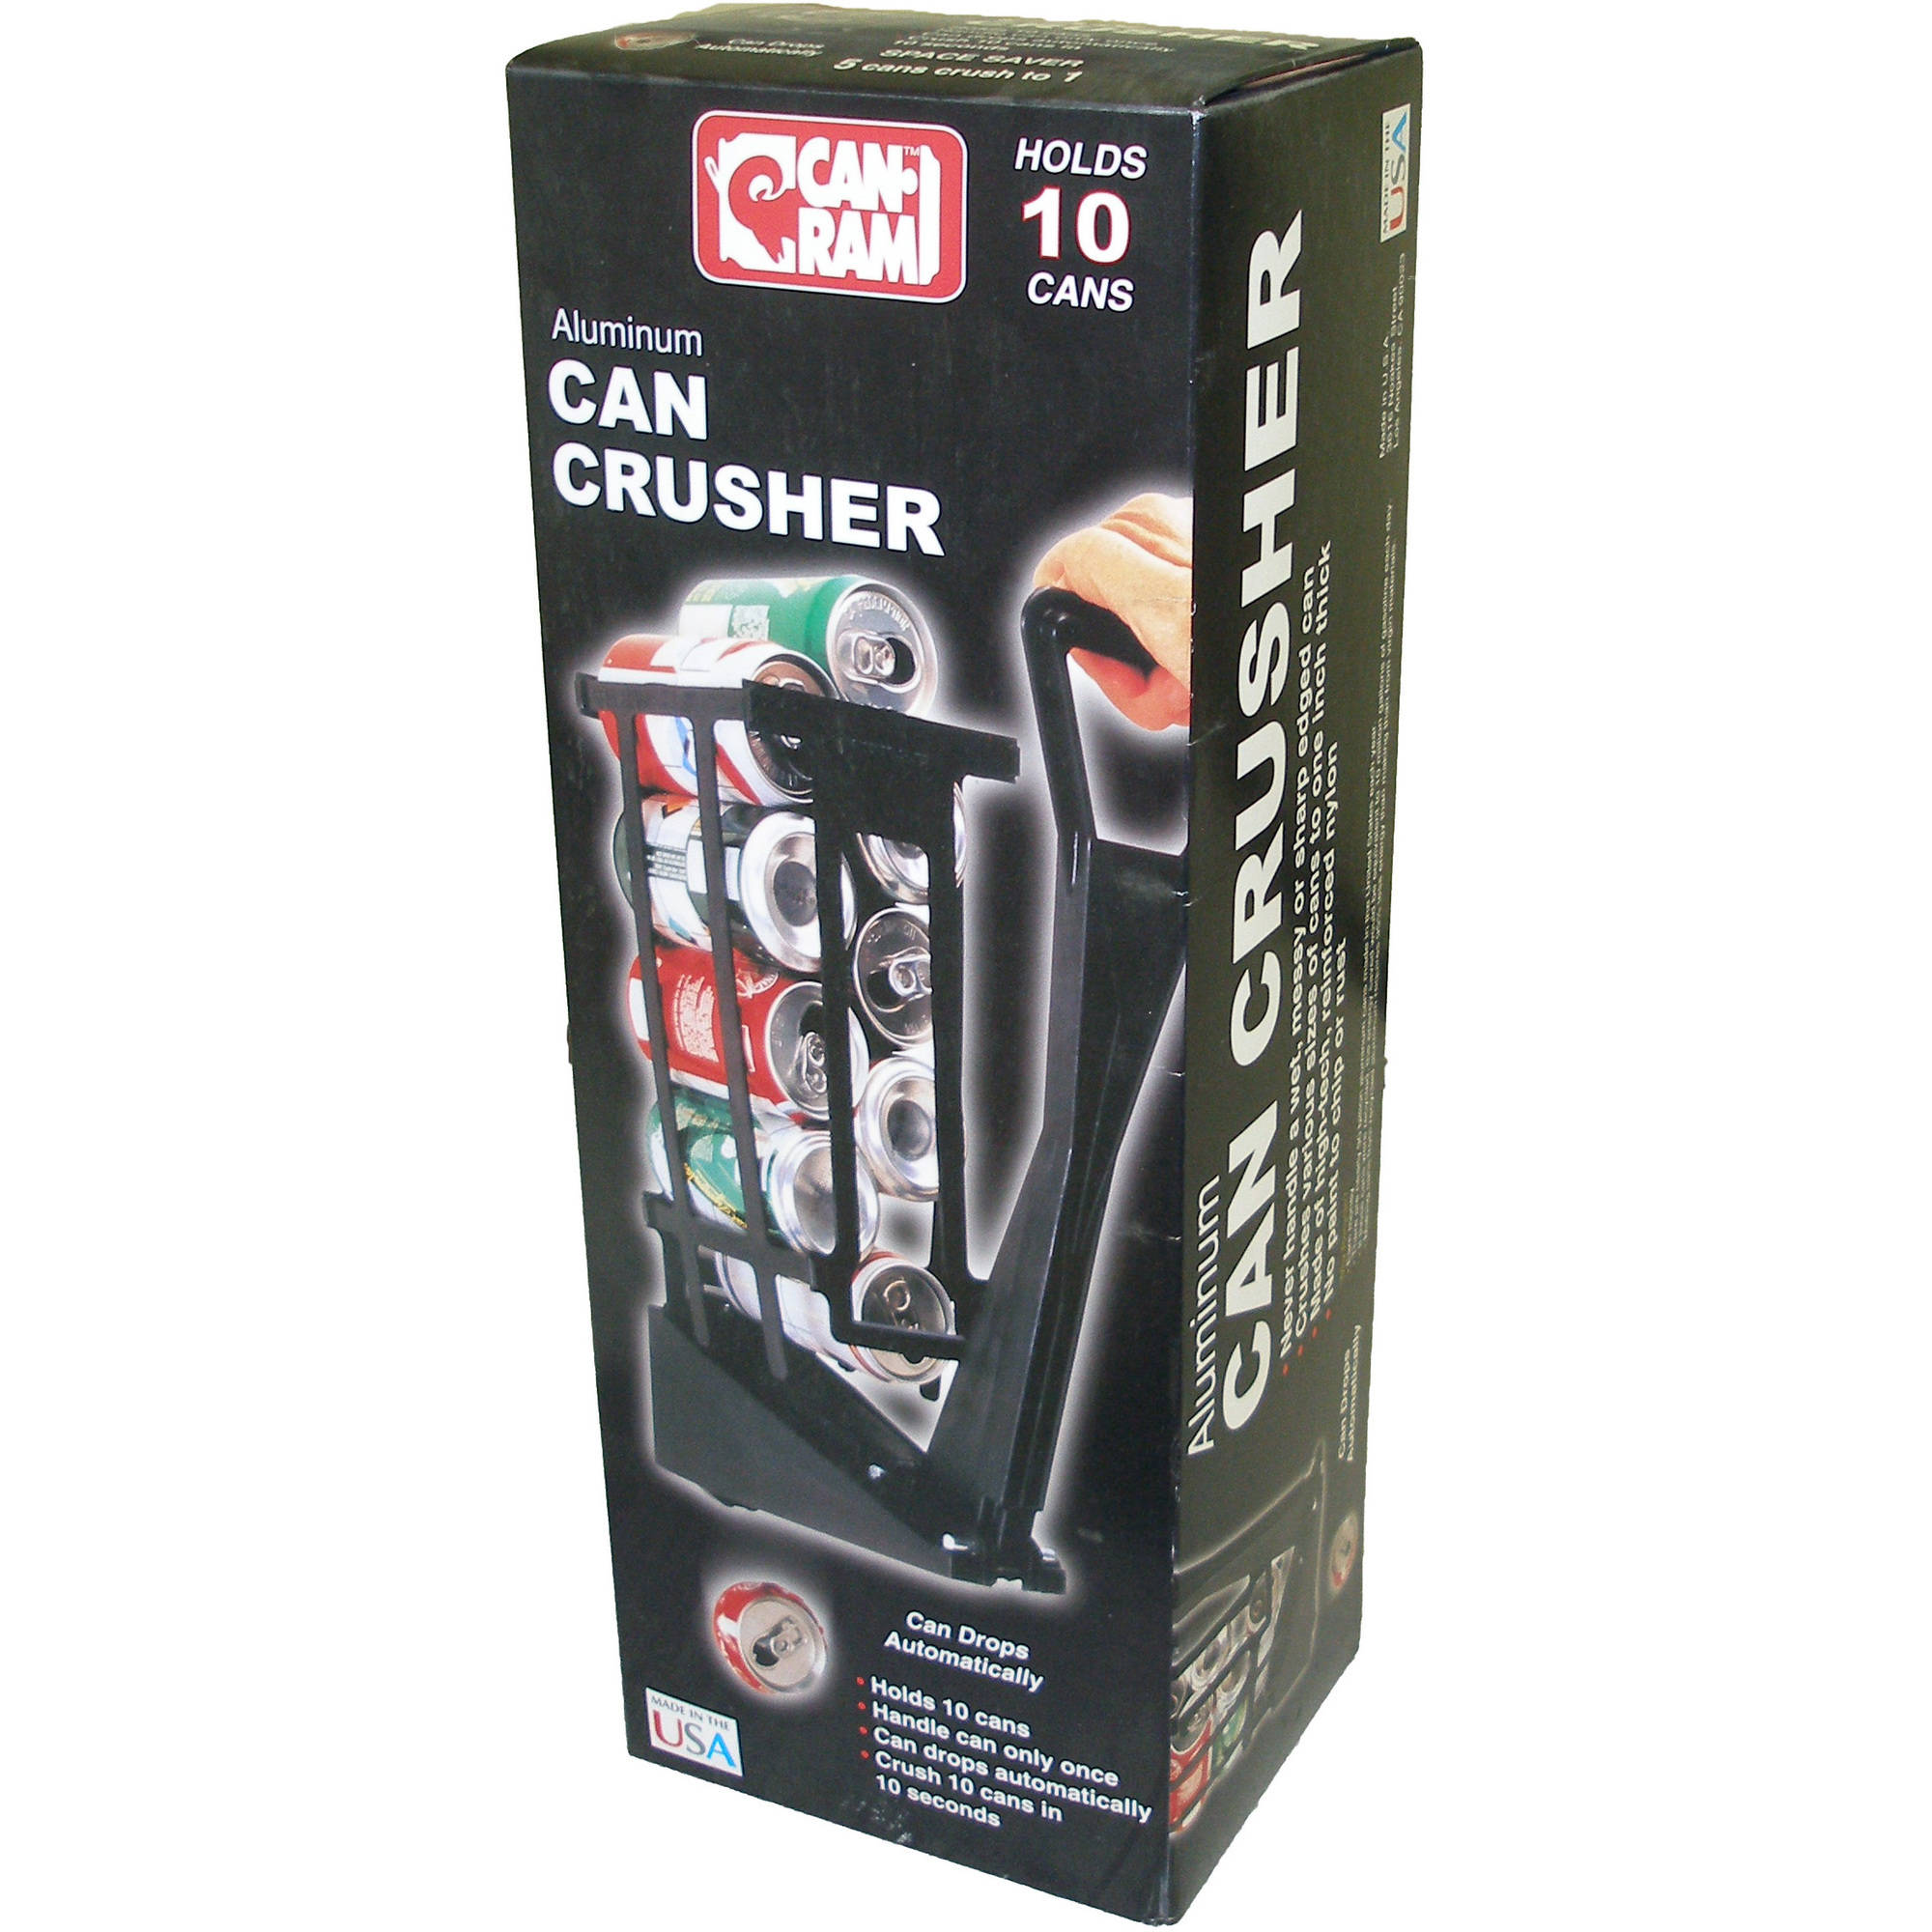 Can-Ram Aluminum Can Crusher